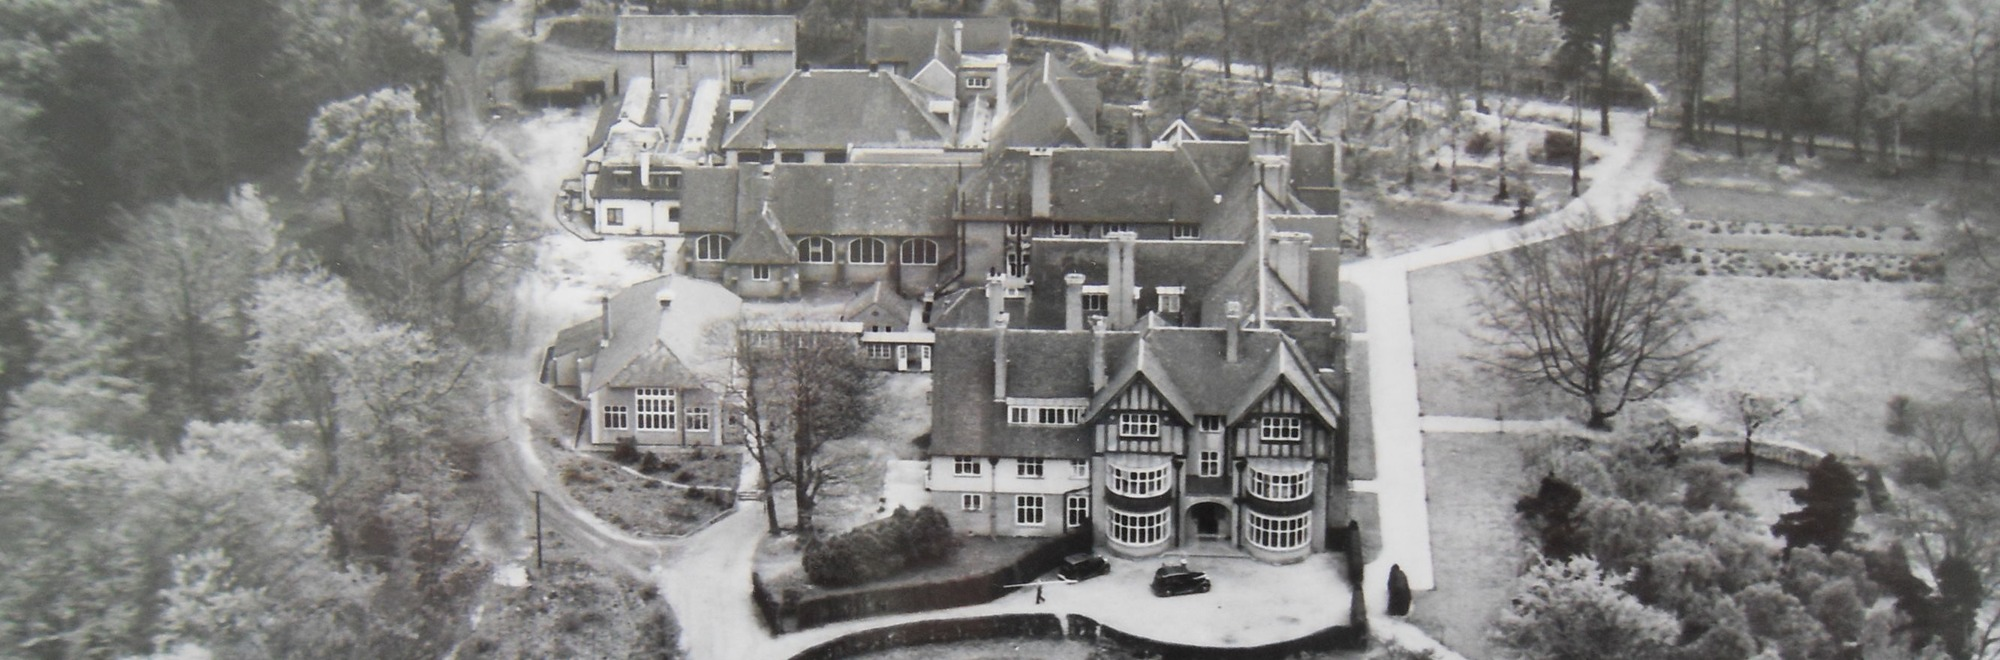 Reed's School aerial photo late 1940s